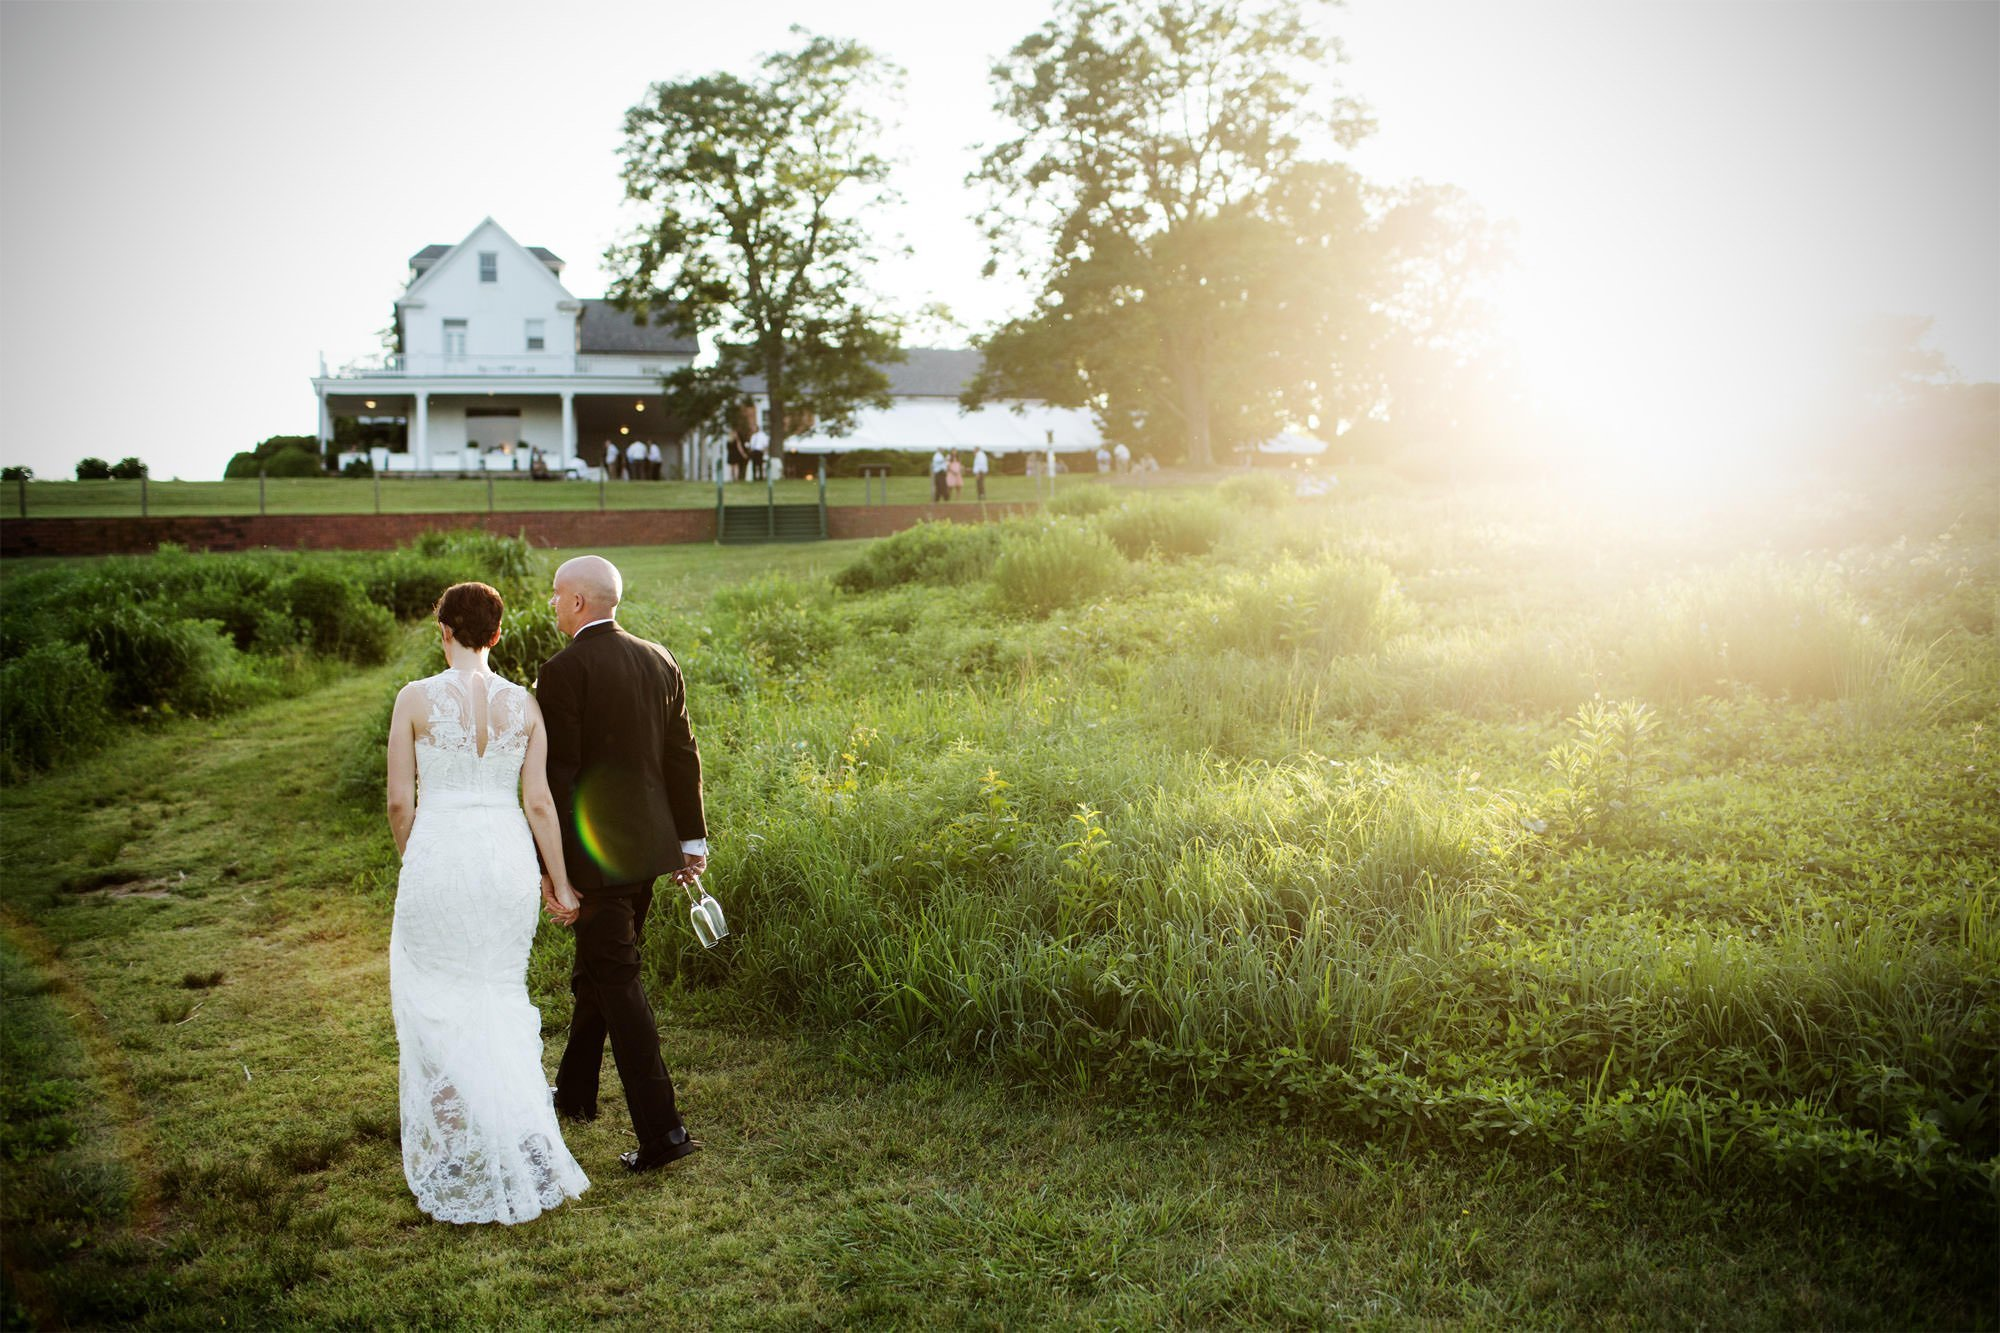 The bride and groom go for a walk during sunset on their River Farm wedding day.